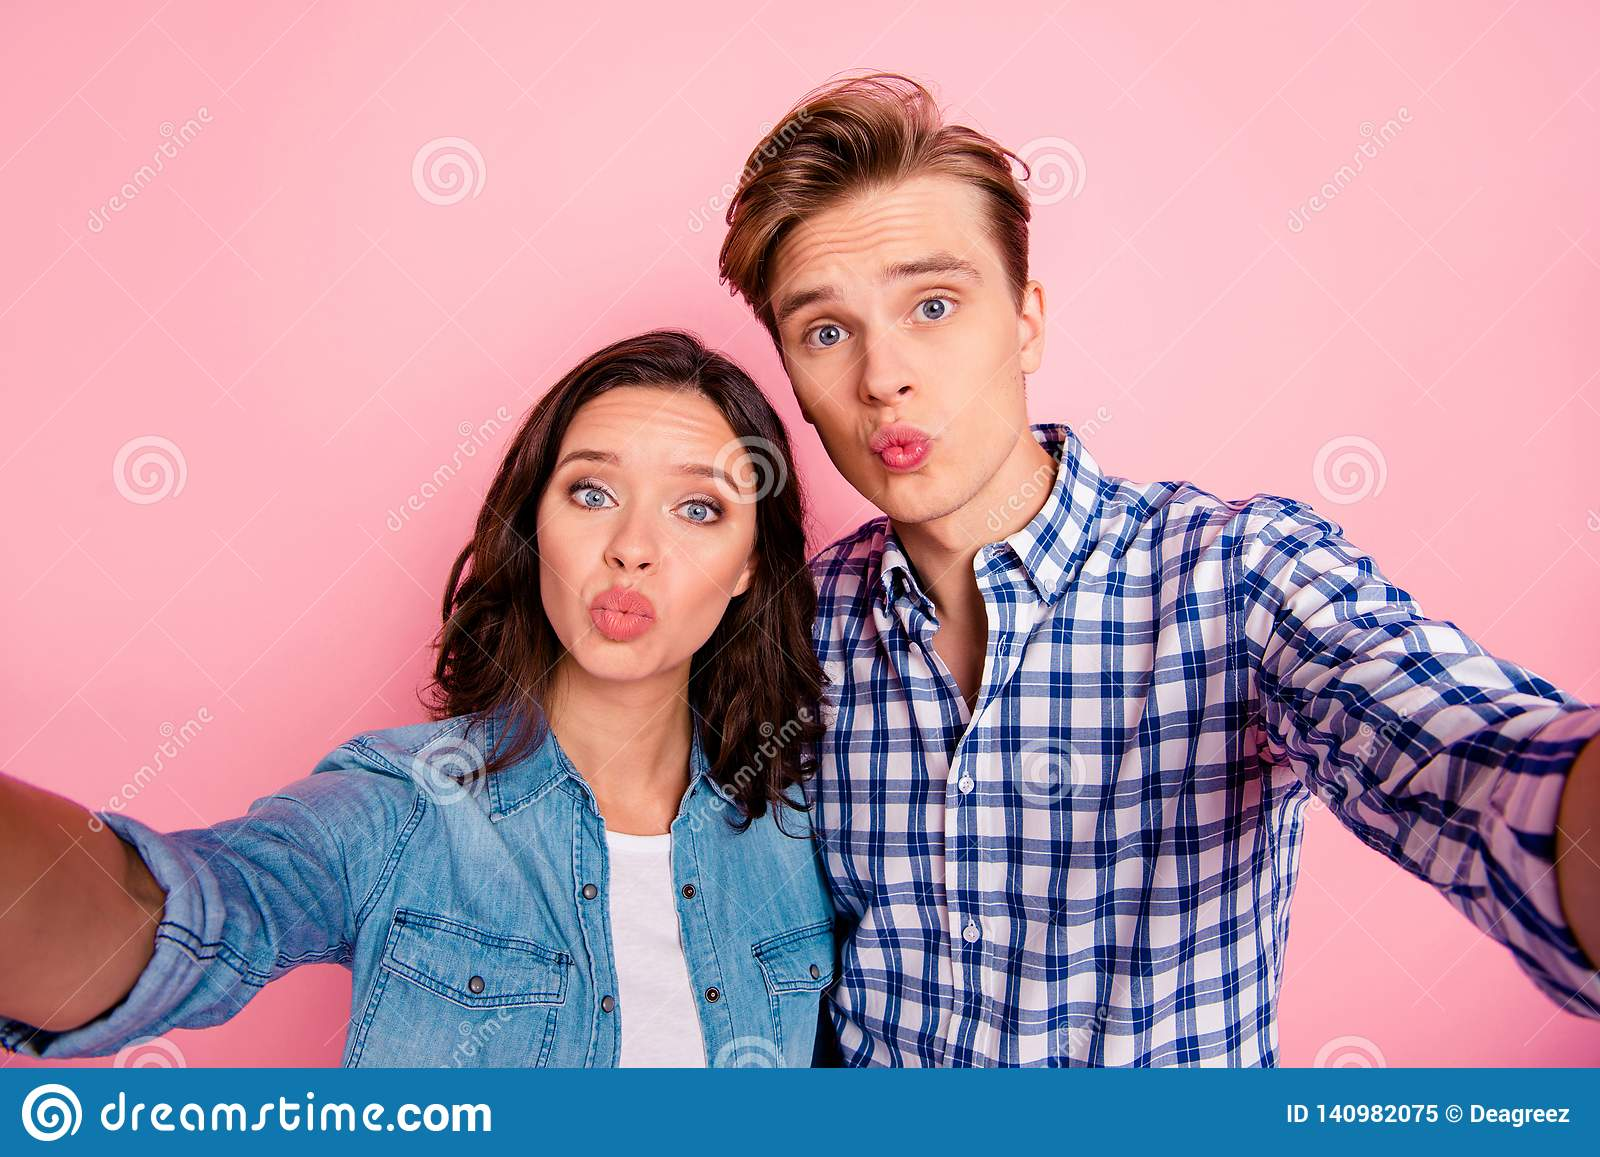 782b06181b248 Close up photo of video call she her he him his pair taking making selfies  sending air kisses to everyone wearing casual jeans denim plaid shirts  isolated ...